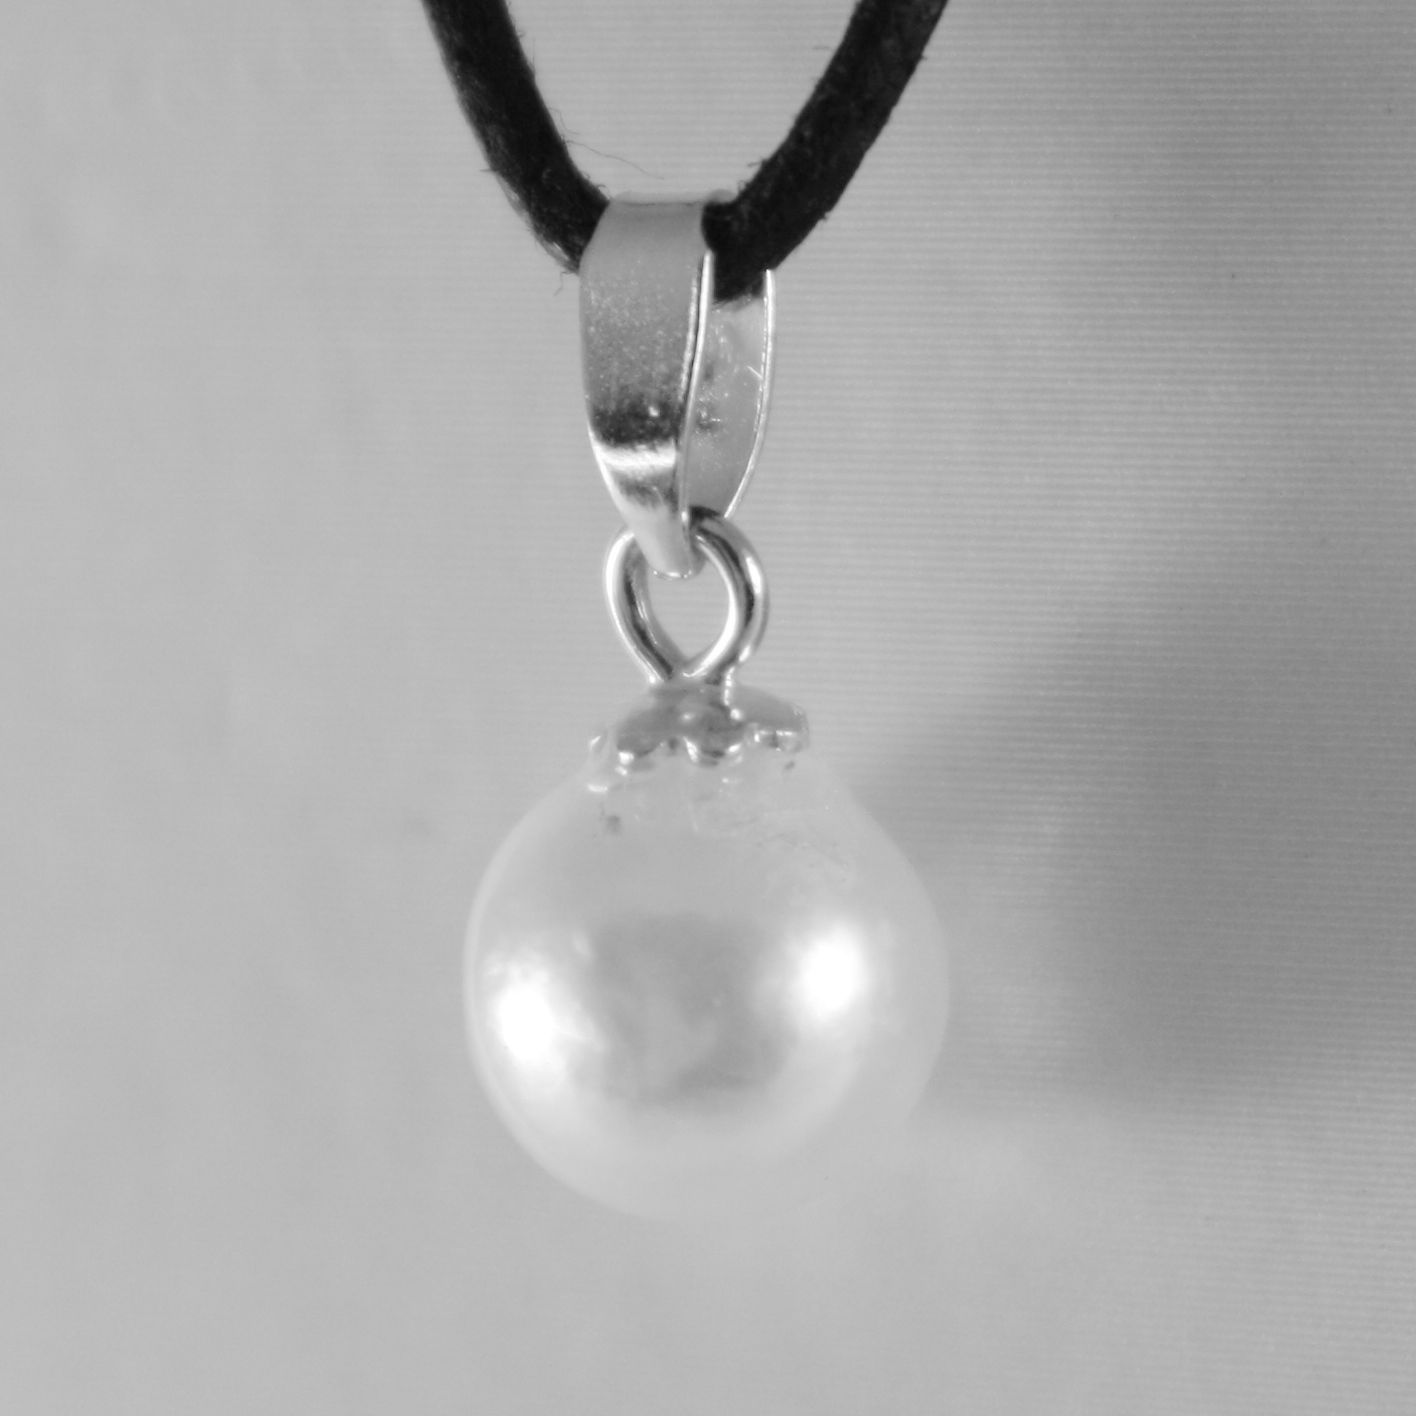 18K WHITE GOLD PENDANT CHARM WITH ROUND AKOYA WHITE PEARL 7 MM, MADE IN ITALY